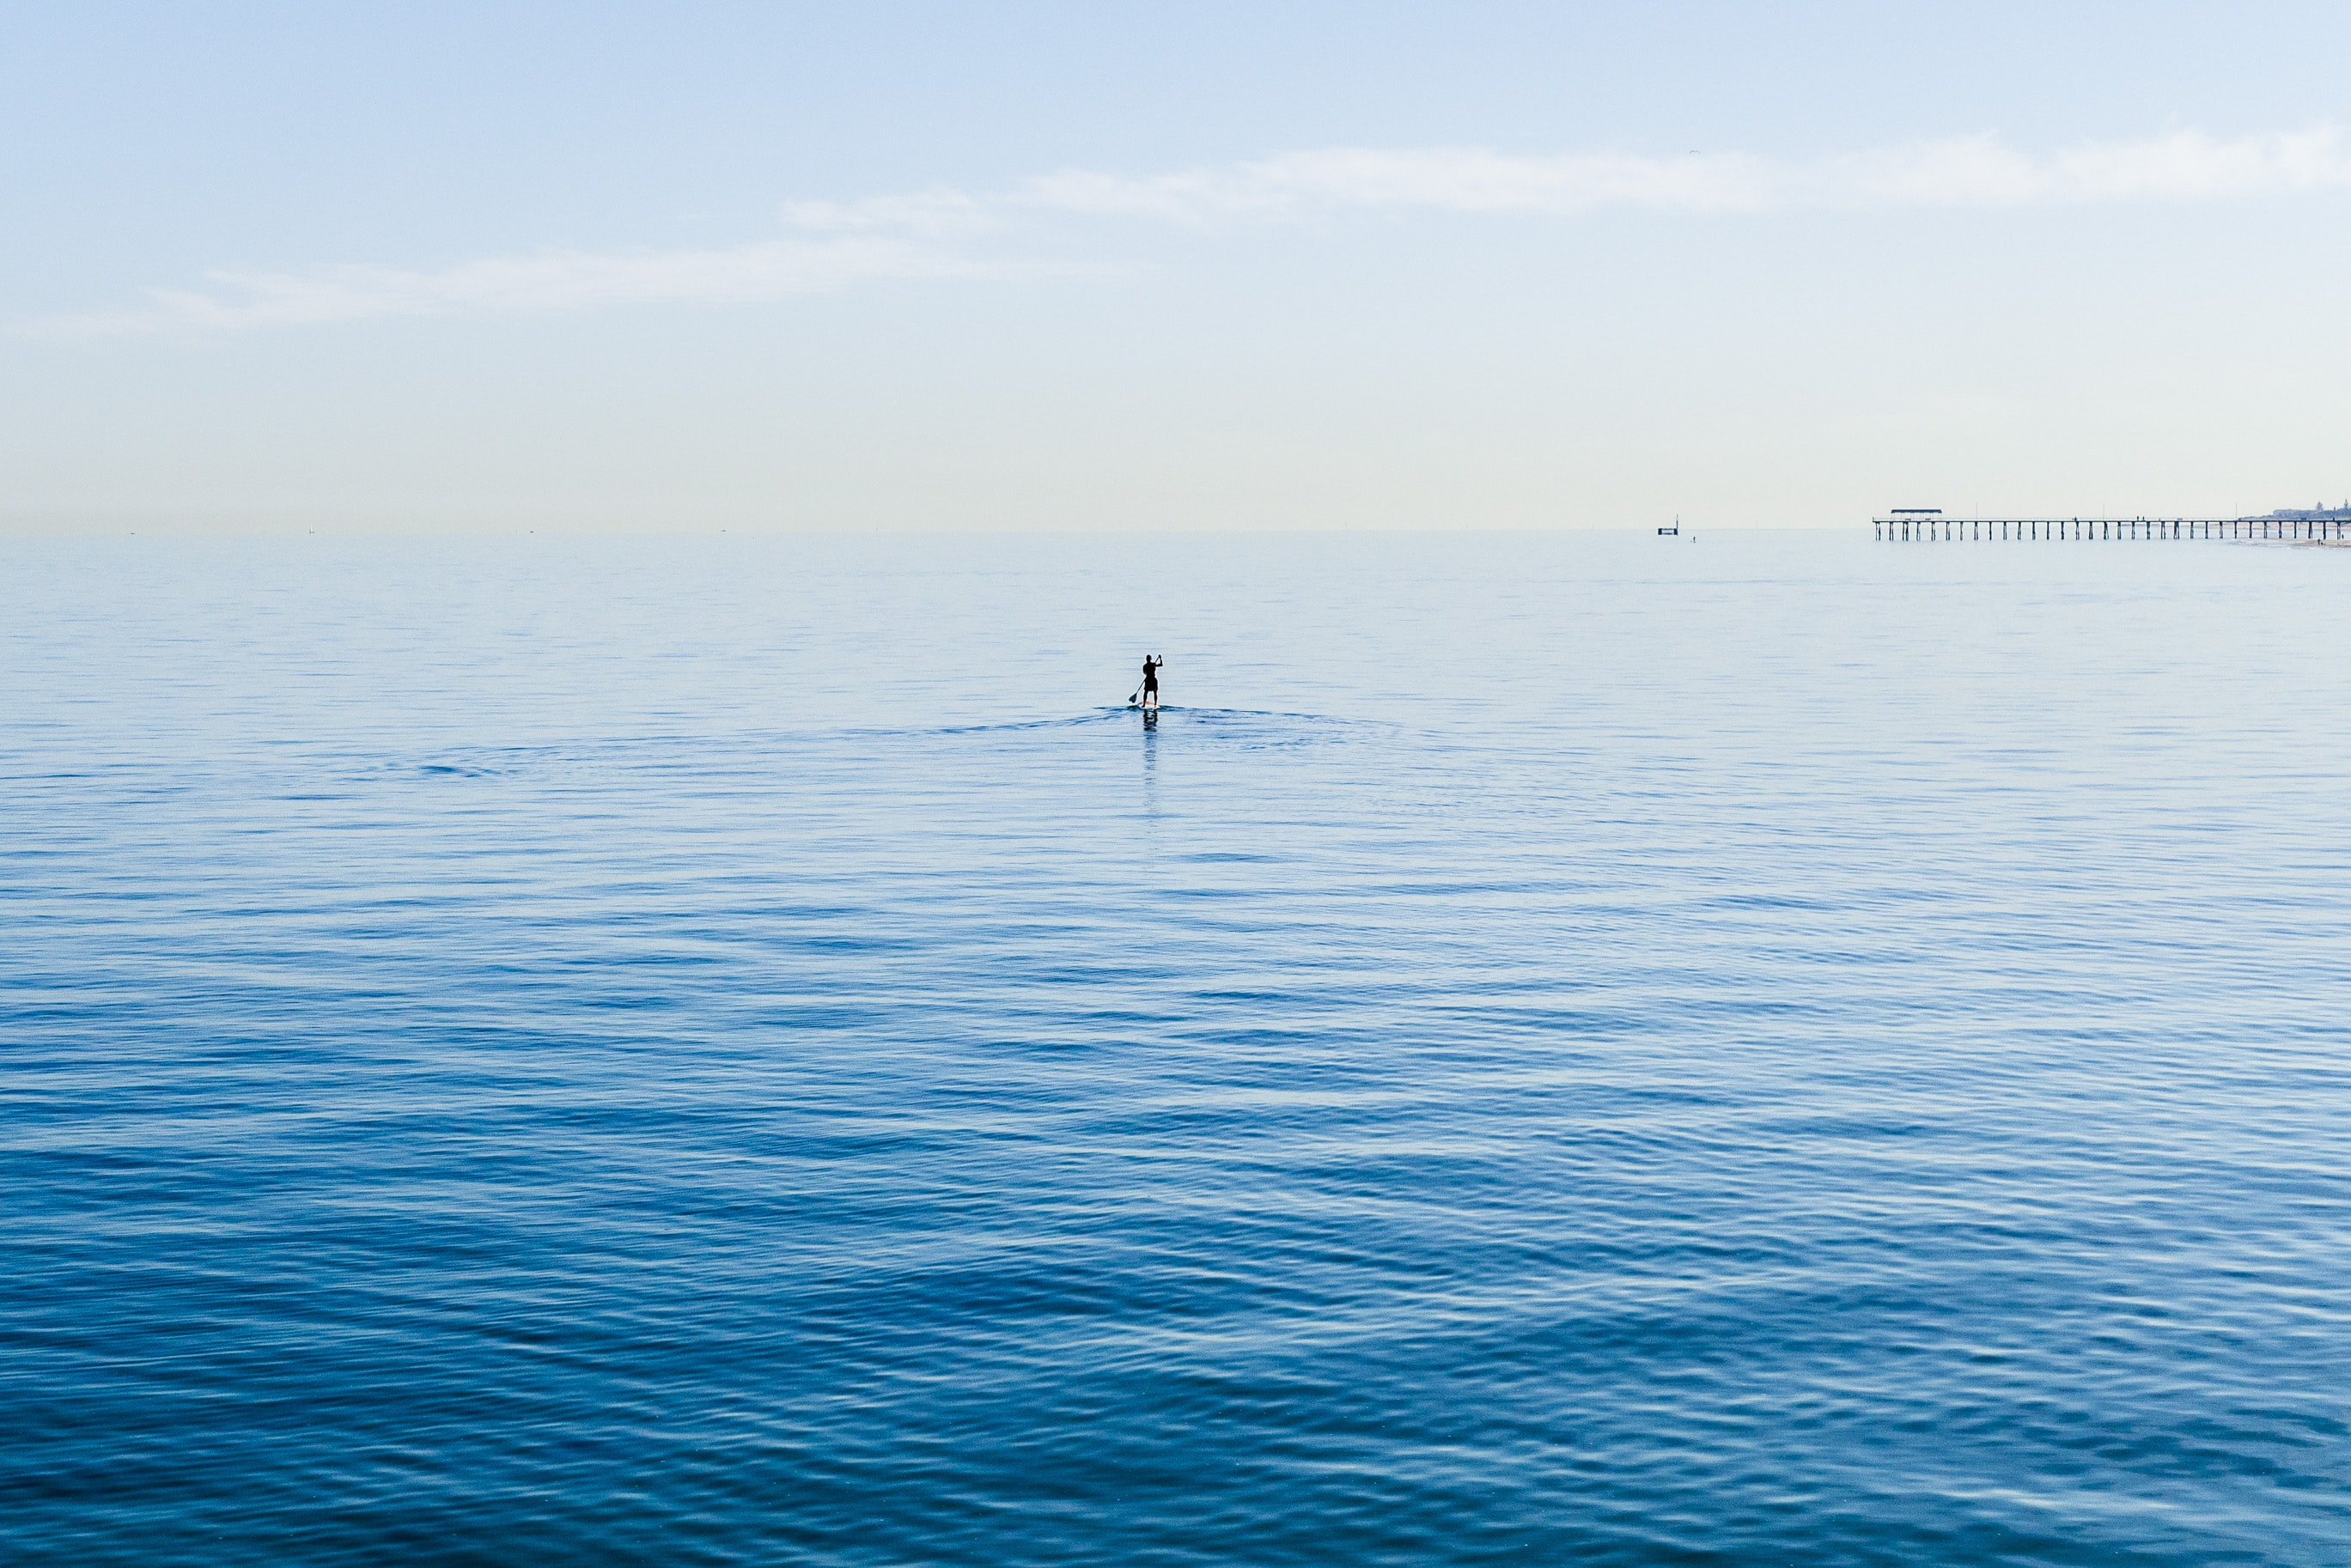 Person on a paddle board in the ocean with the pier in the distance at Henley Beach